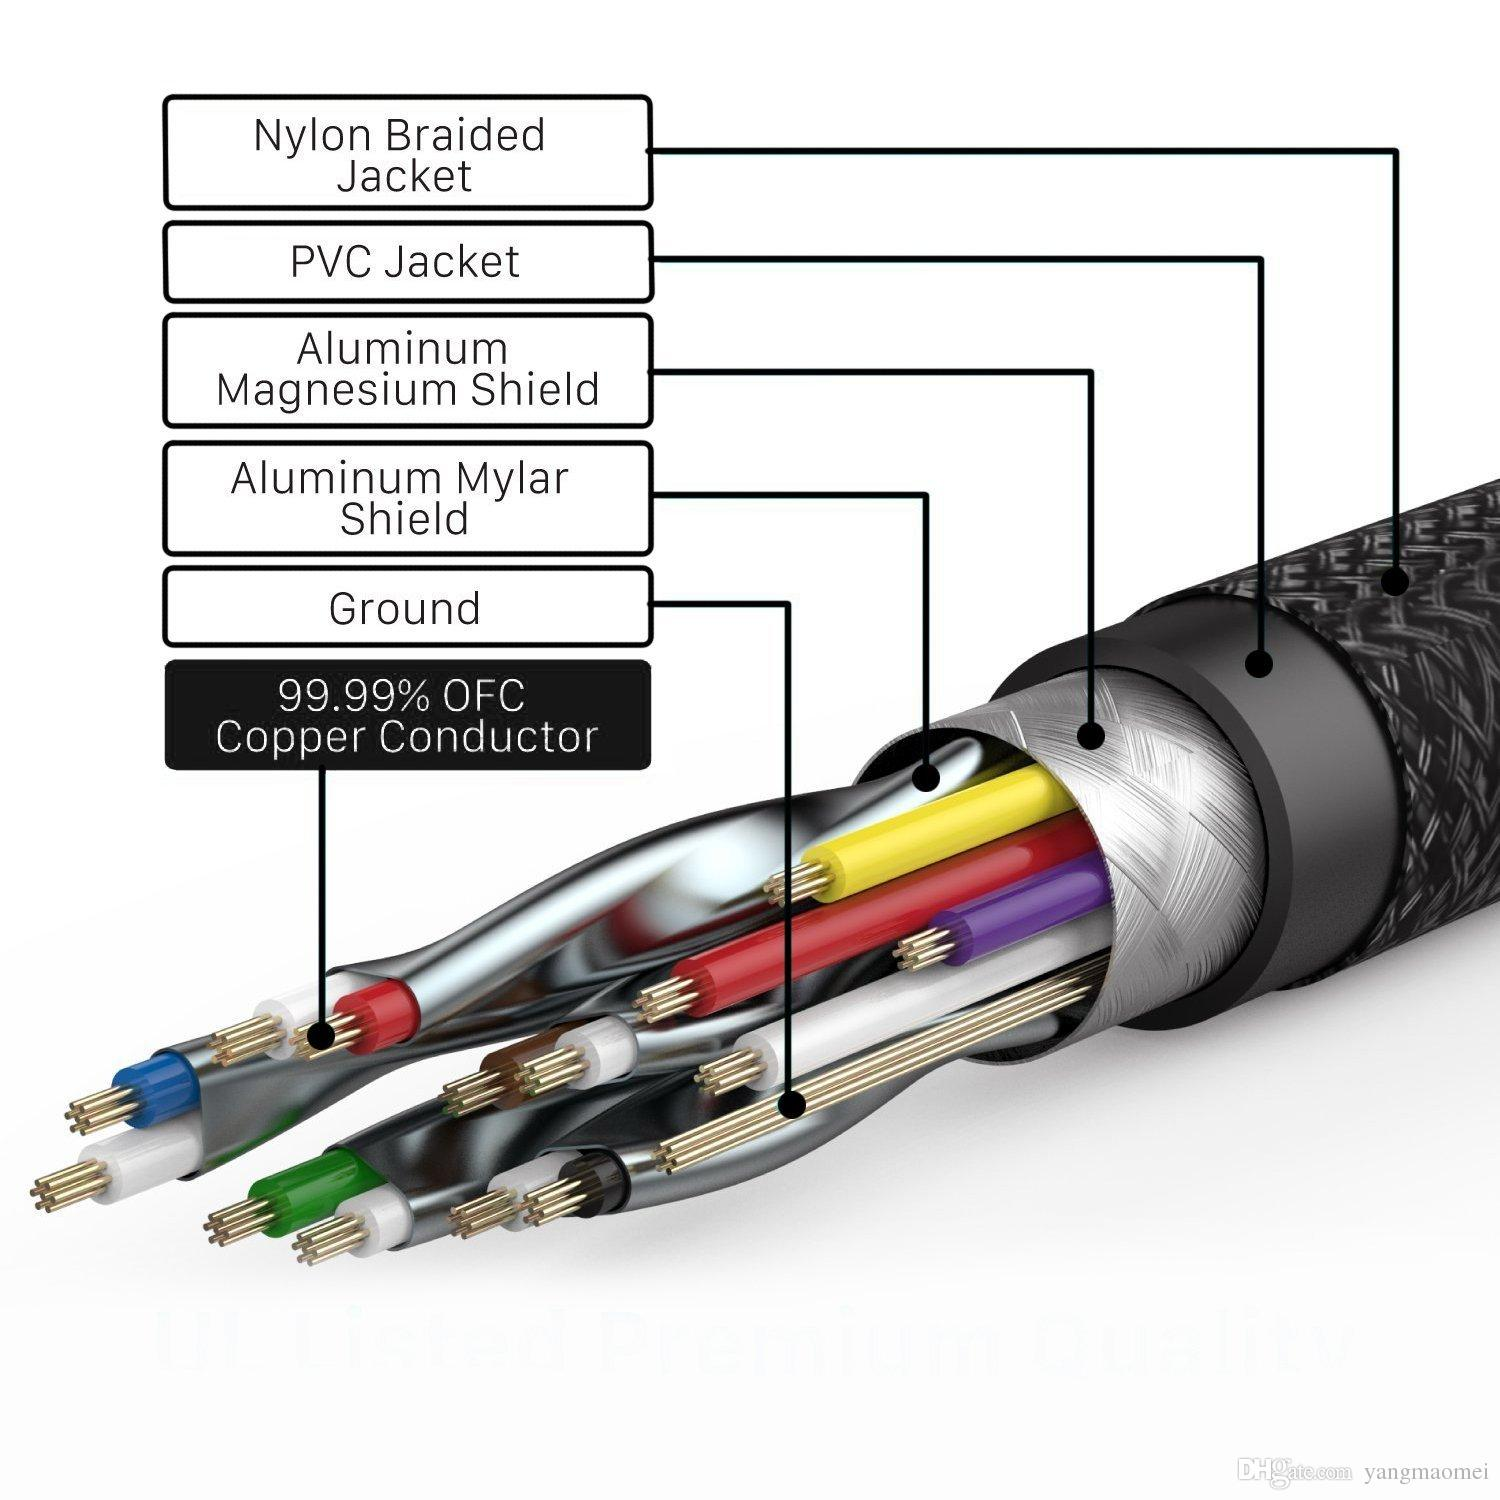 1m 2m 3m 5m High Quality Metal Shell Hdmi Cable With Ethernet 1080p Xbox Network Wiring Diagram For Hd Tvs 360 Ps3 Playstation 3 Skyhd Hdtv Adapter 11 Pin Micro Usb